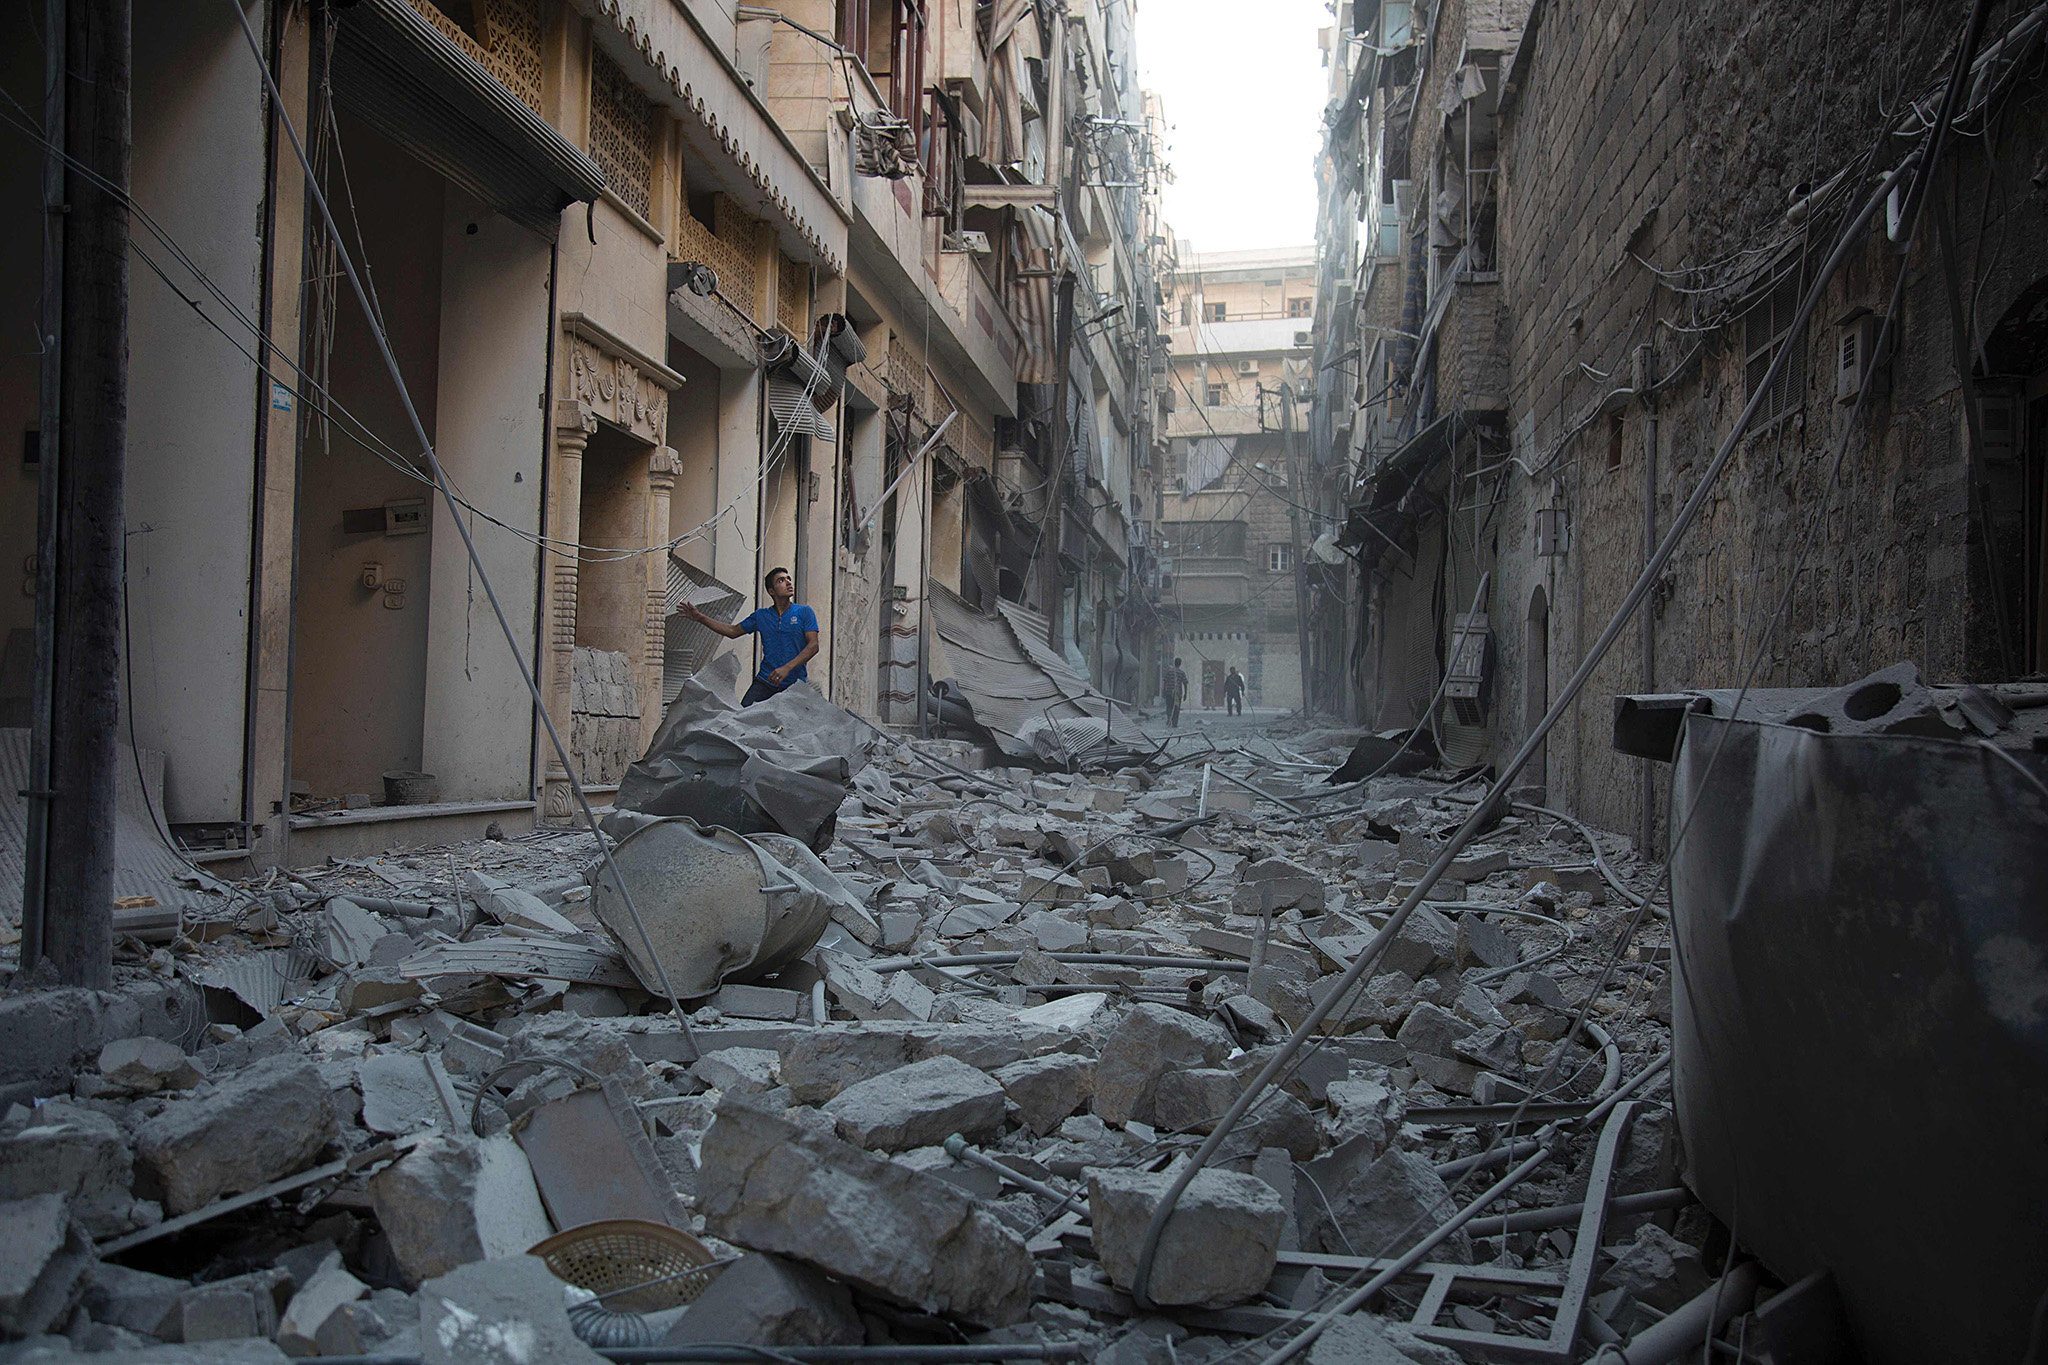 A Syrian man stands in the rubble of destroyed buildings following an air strike in Aleppo's rebel-controlled neighbourhood of Karm al-Jabal on September 18, 2016. Syria's ceasefire was on the brink of collapsing on September 18, after a US-led coalition strike killed dozens of regime soldiers and Aleppo city was hit by its first raids in nearly a week. / AFP PHOTO / KARAM AL-MASRIKARAM AL-MASRI/AFP/Getty Images